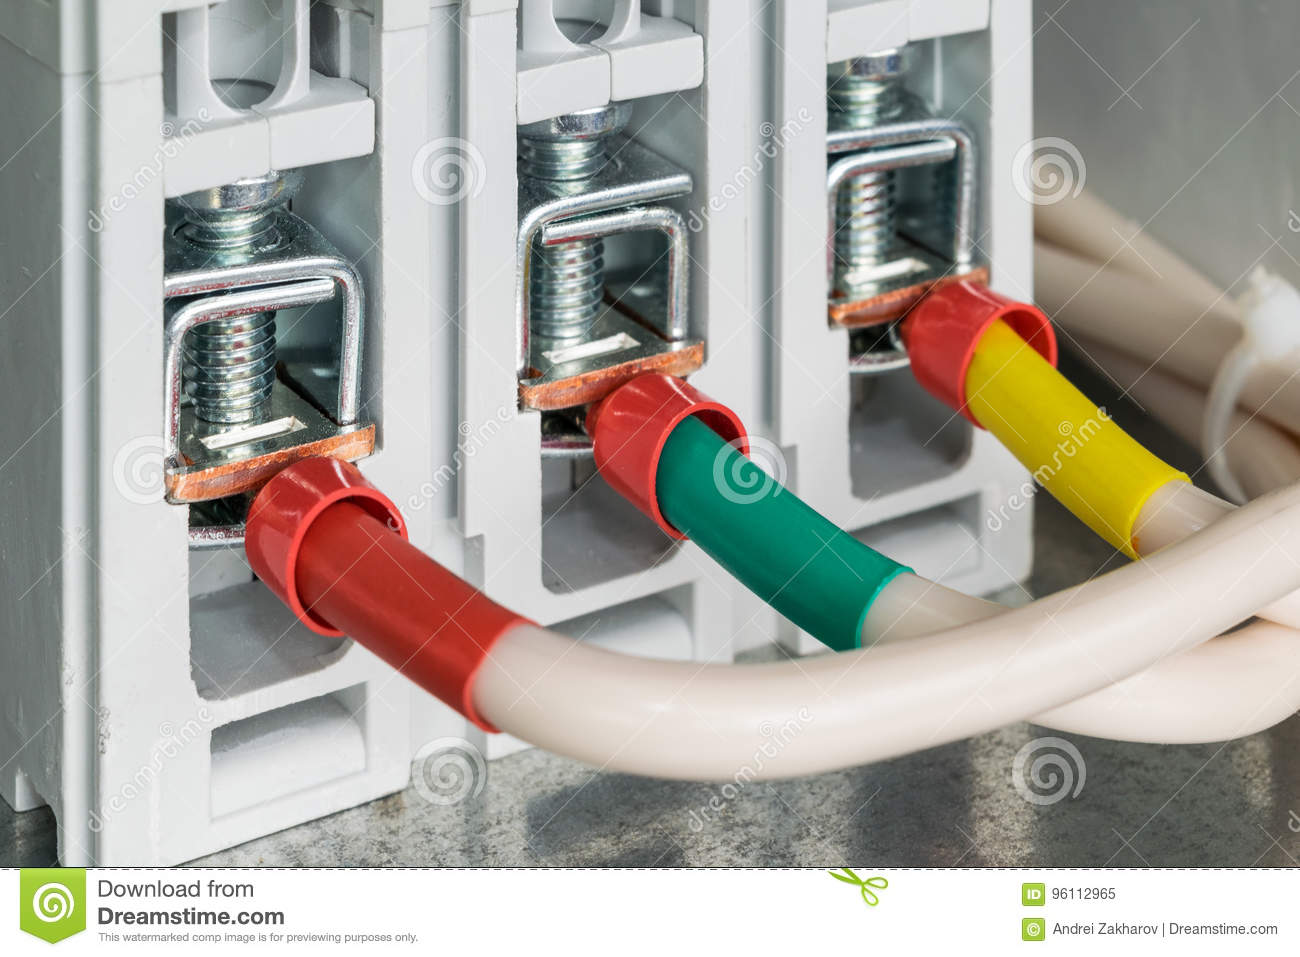 On Mounting Panel Power Circuit Breaker Connected Wires With Tips For Wiring Electric Ferrules Pressed Hometime Clips The Marked Red Green And Yellow